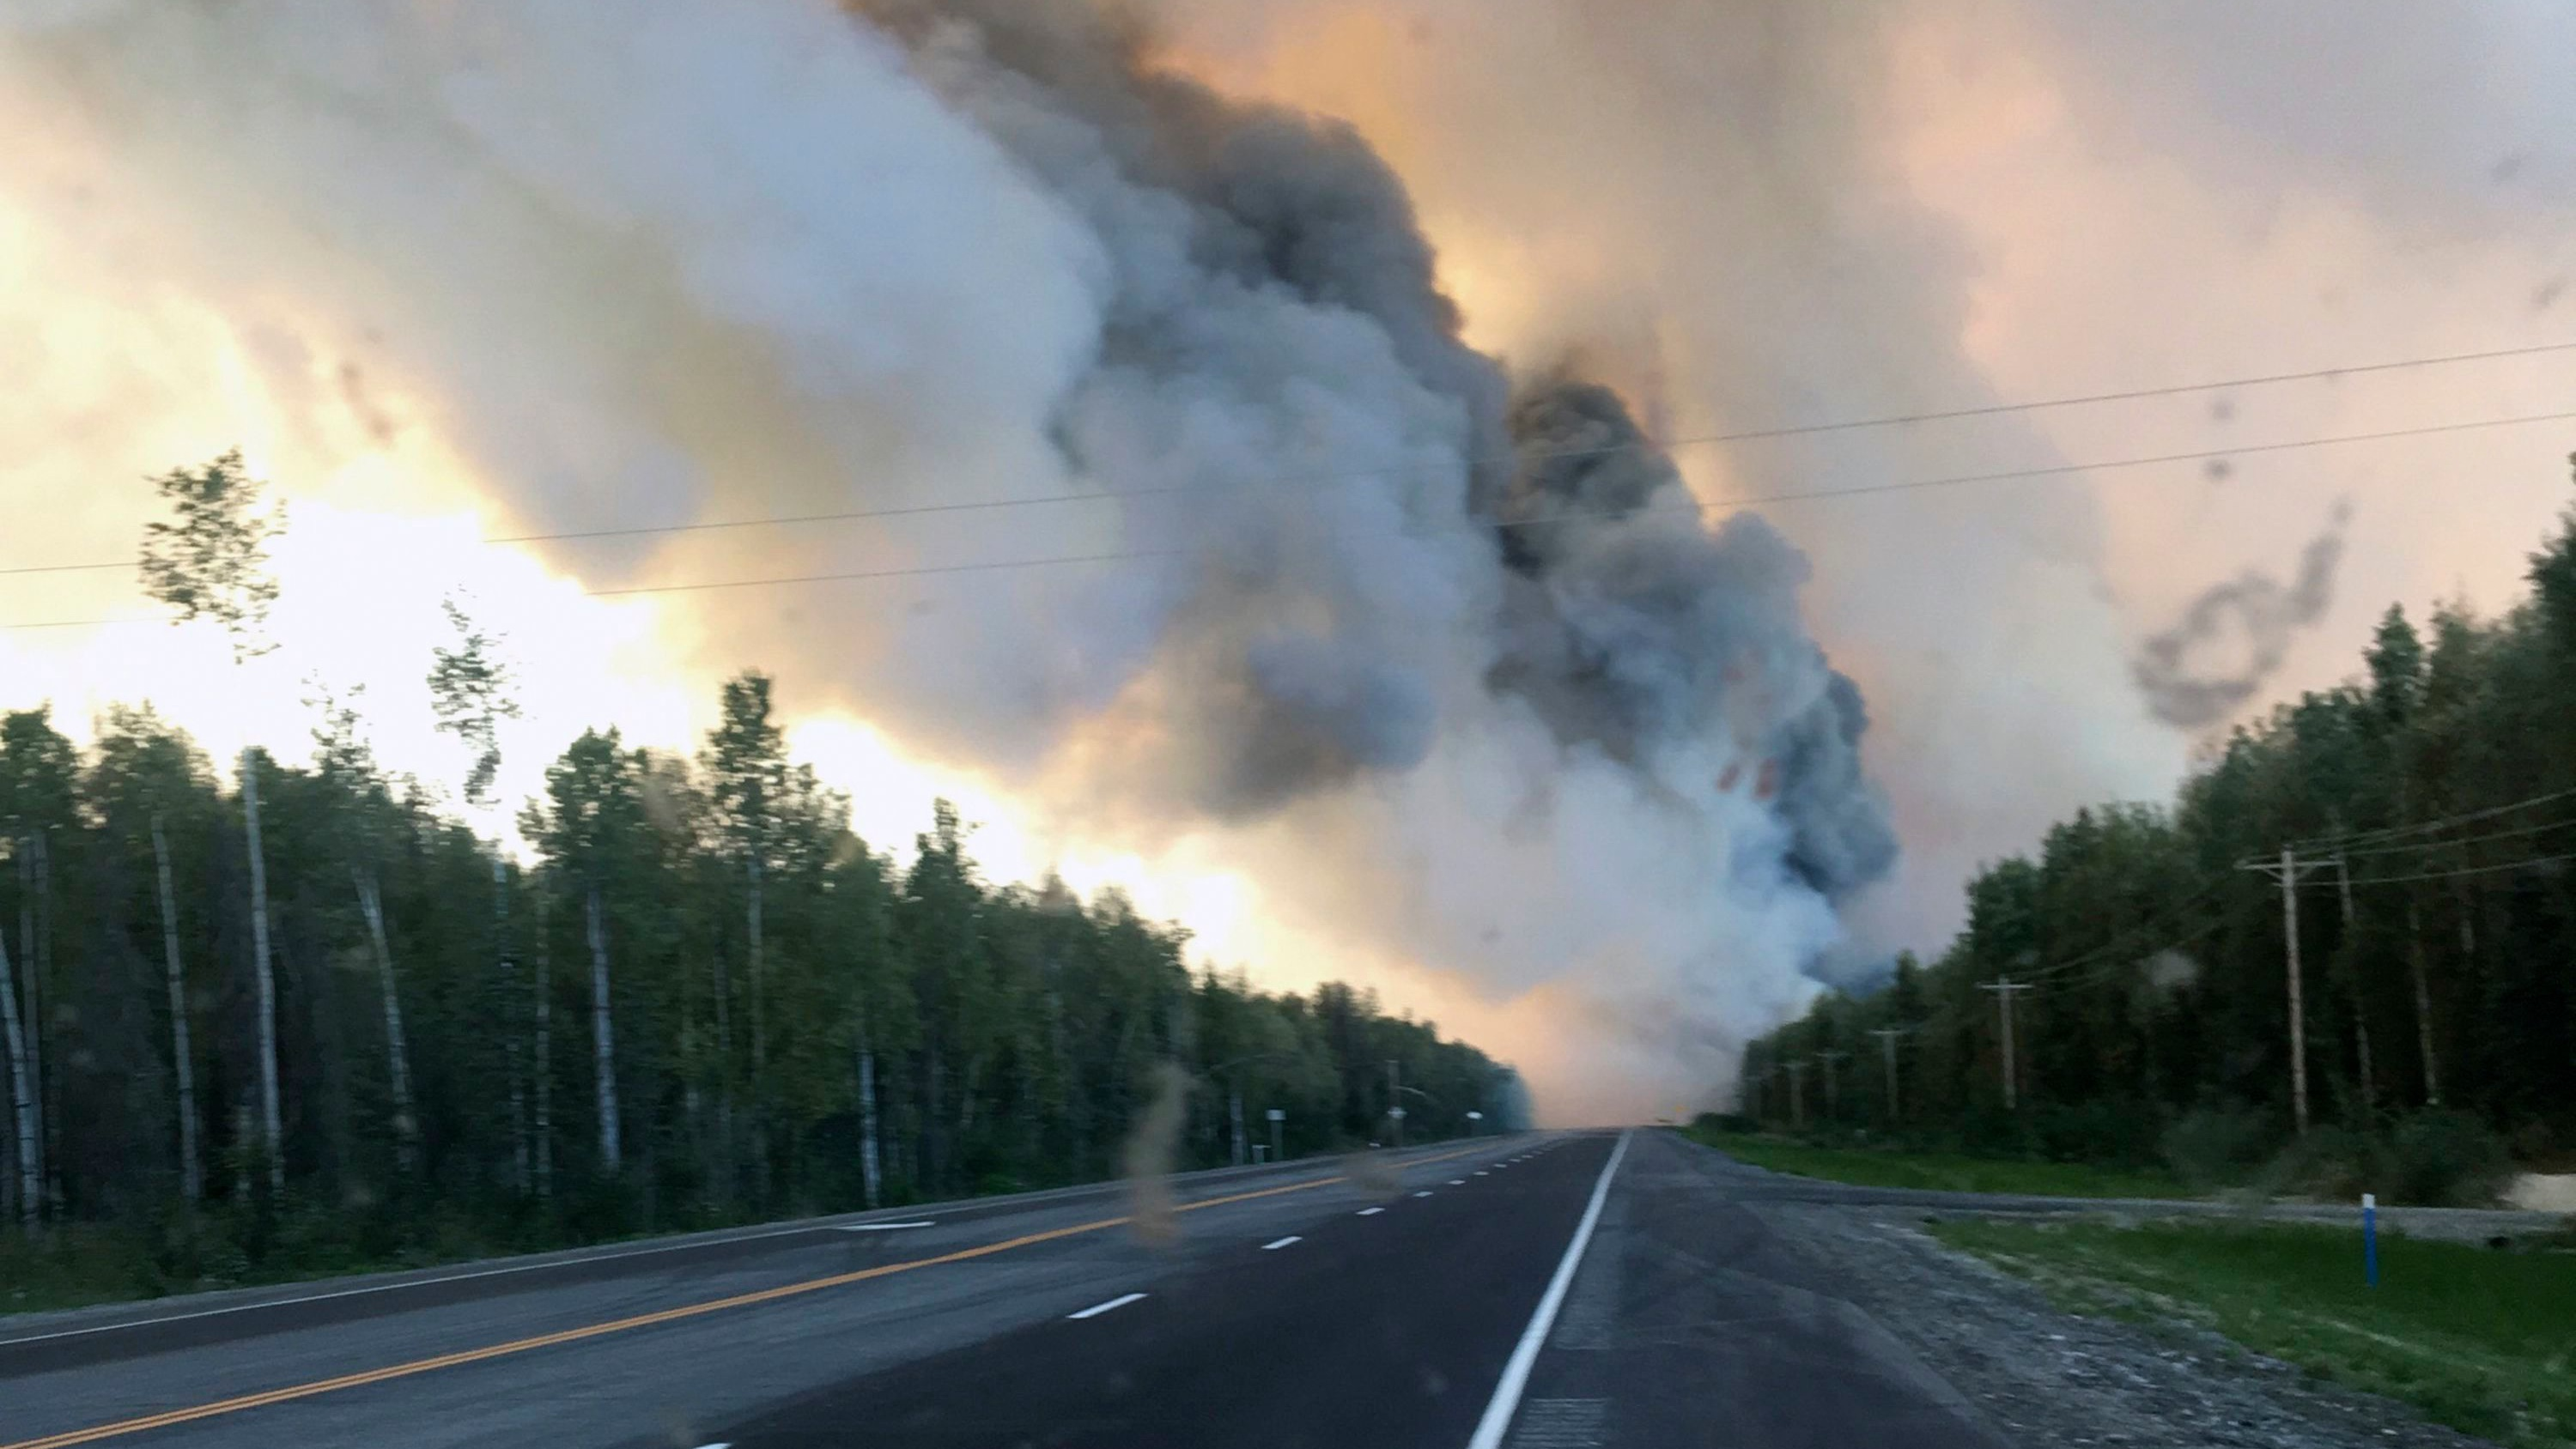 Alaska Has 10 Wildfires Burning Right Now, With One Expected to Last Until Winter